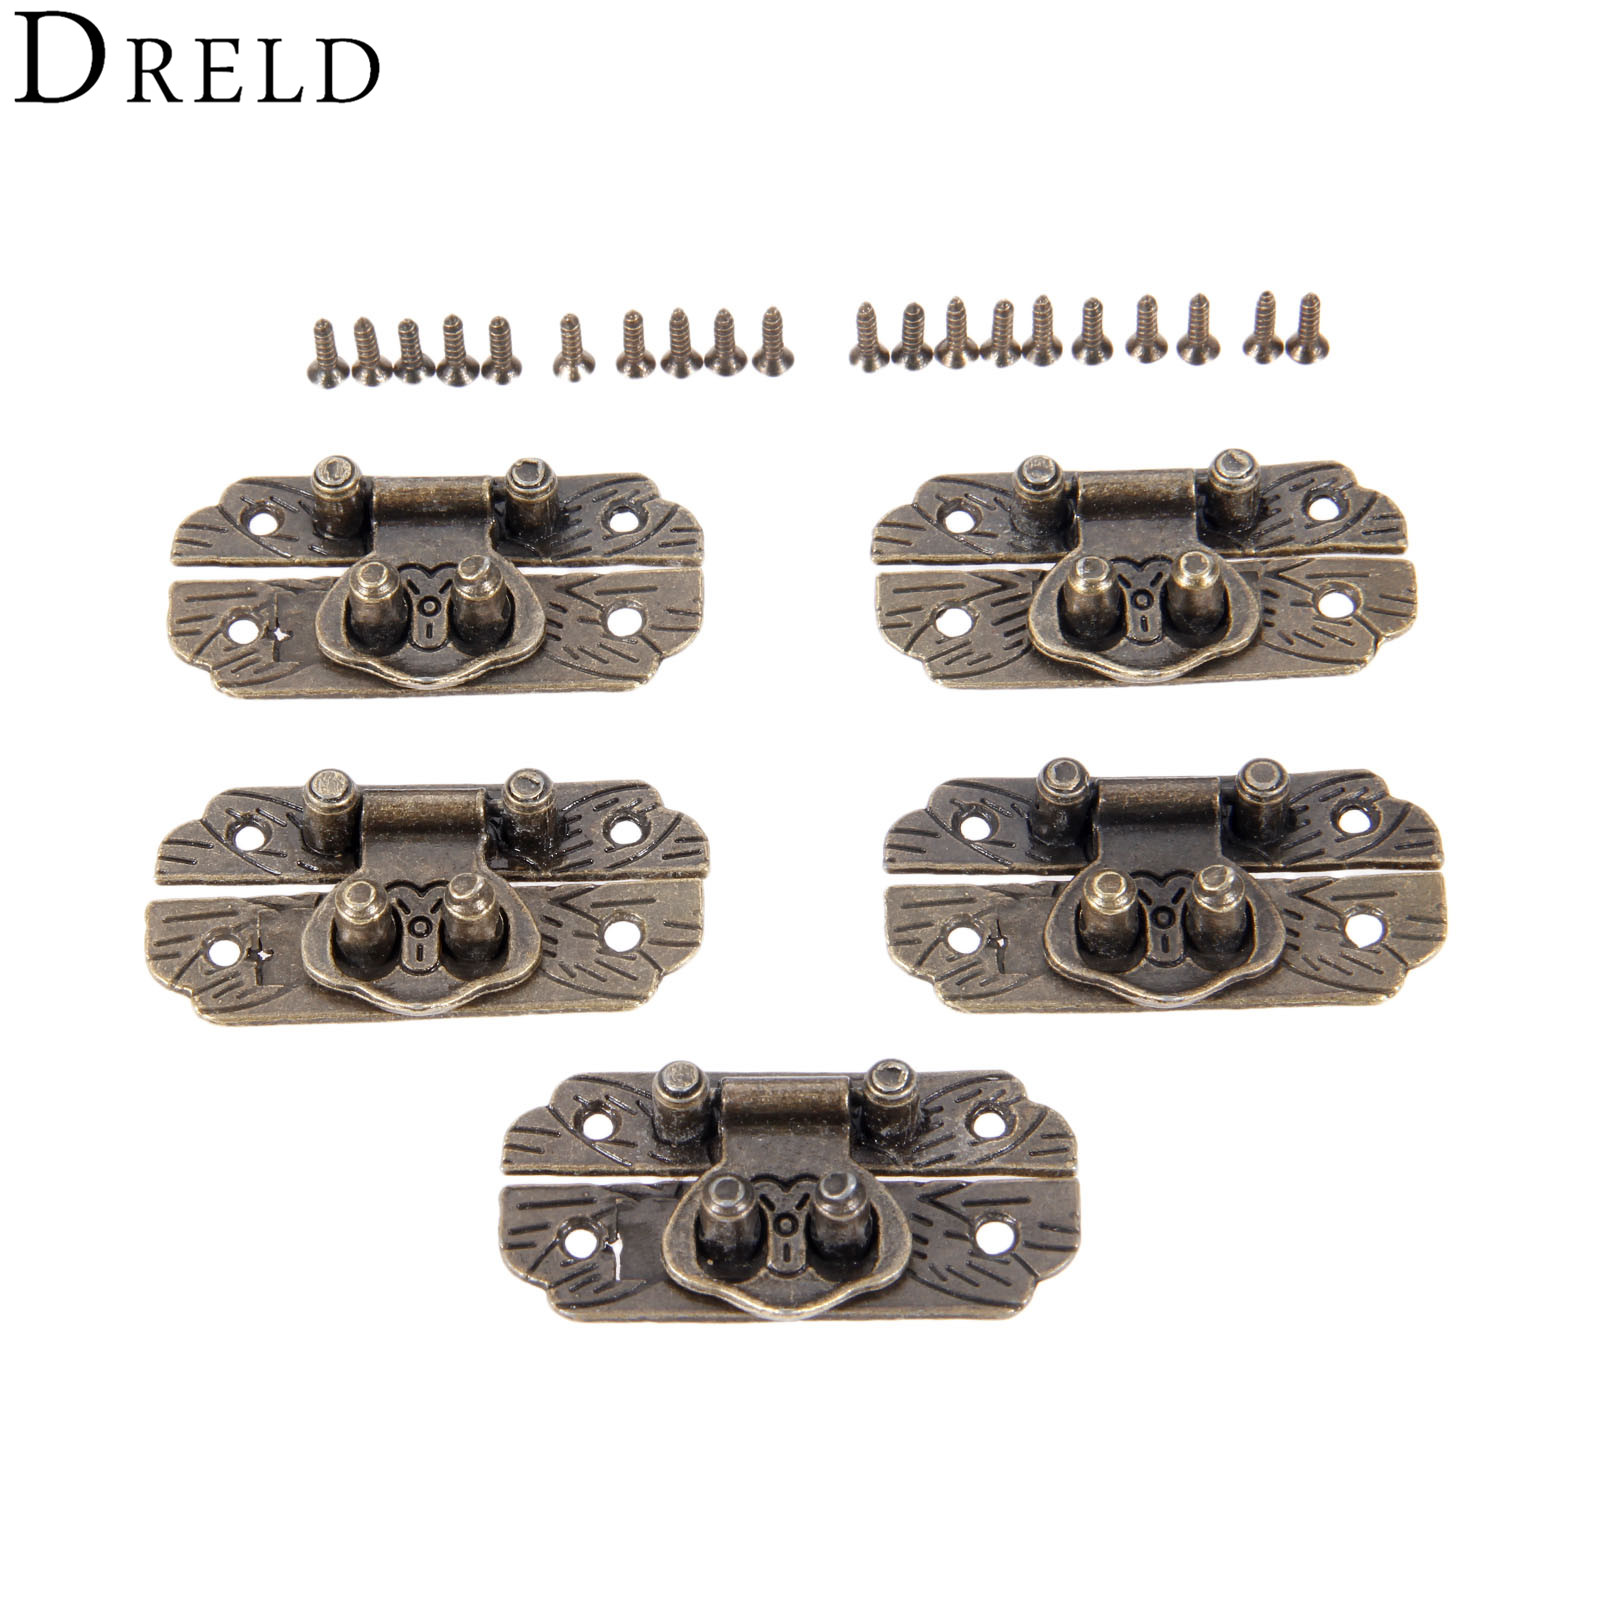 DRELD 5Pc Antique Bronze Box Hasps Iron Lock Catch Latches For Jewelry Box Suitcase Buckle Clip Clasp Furniture Hardware 25*48mm